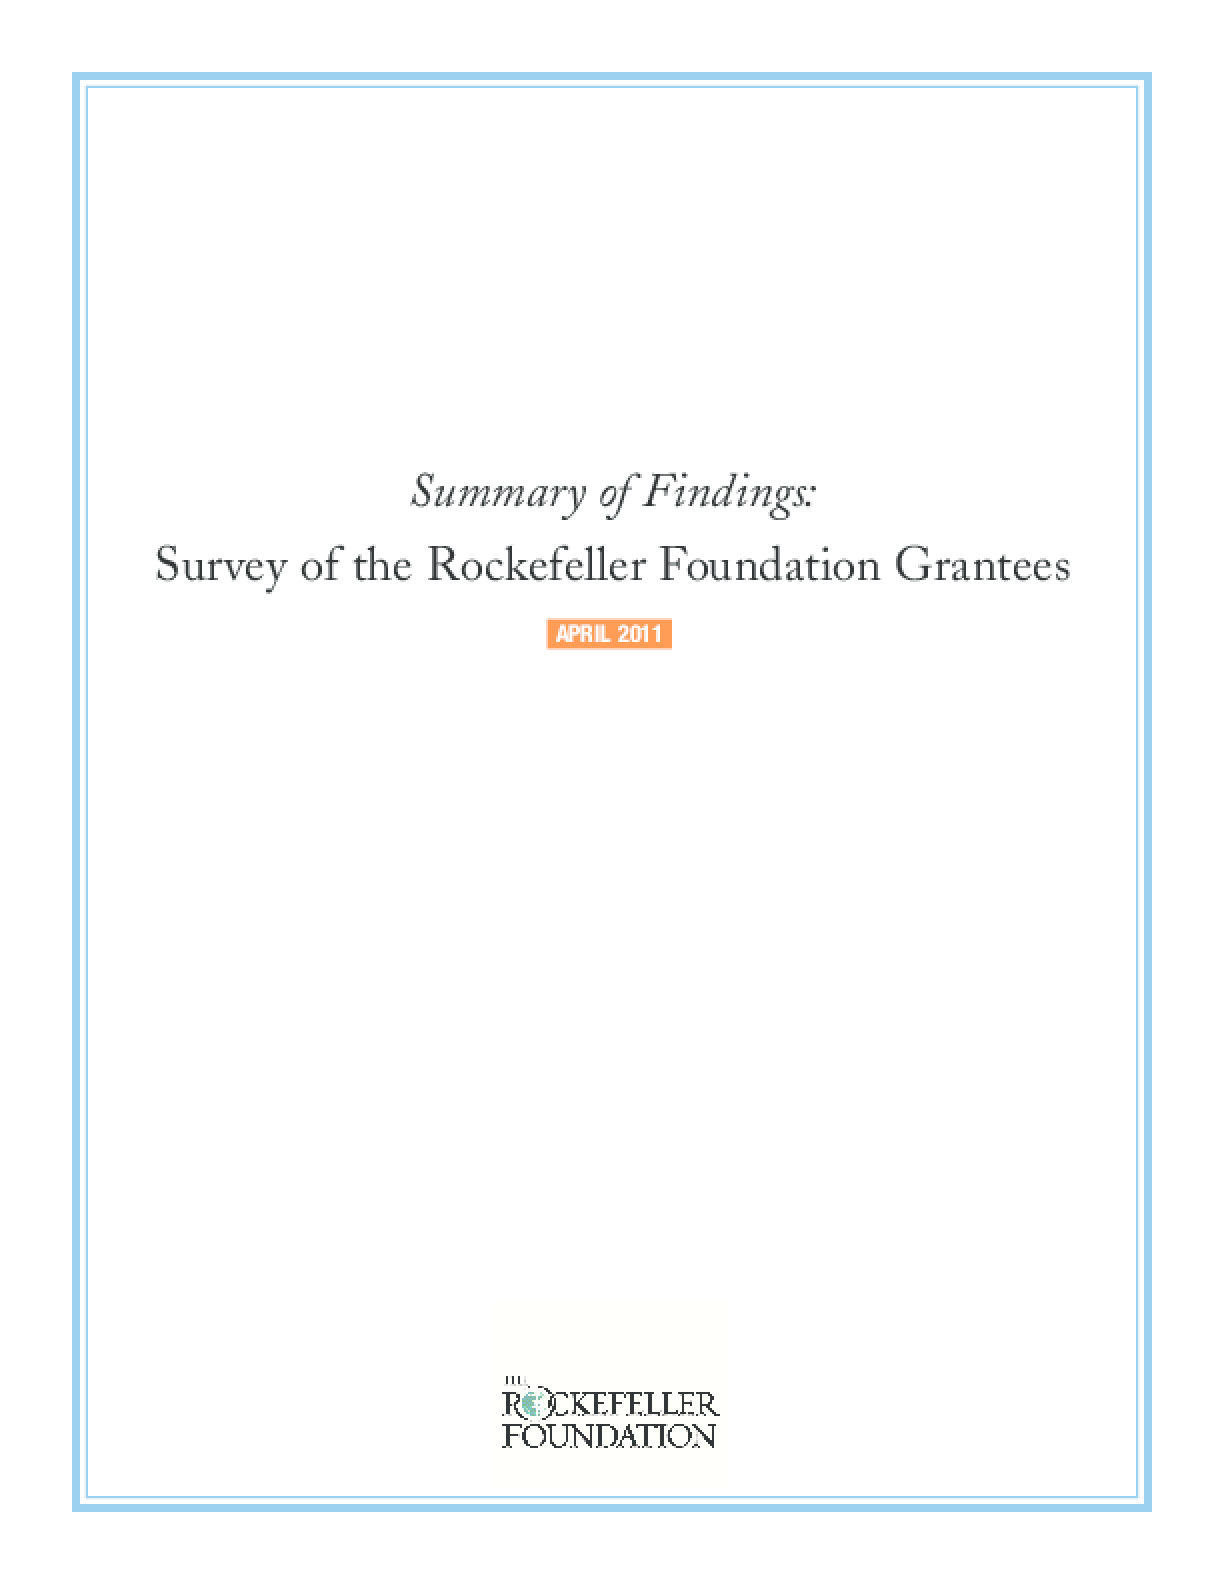 Summary of Findings: Survey of the Rockefeller Foundation Grantees